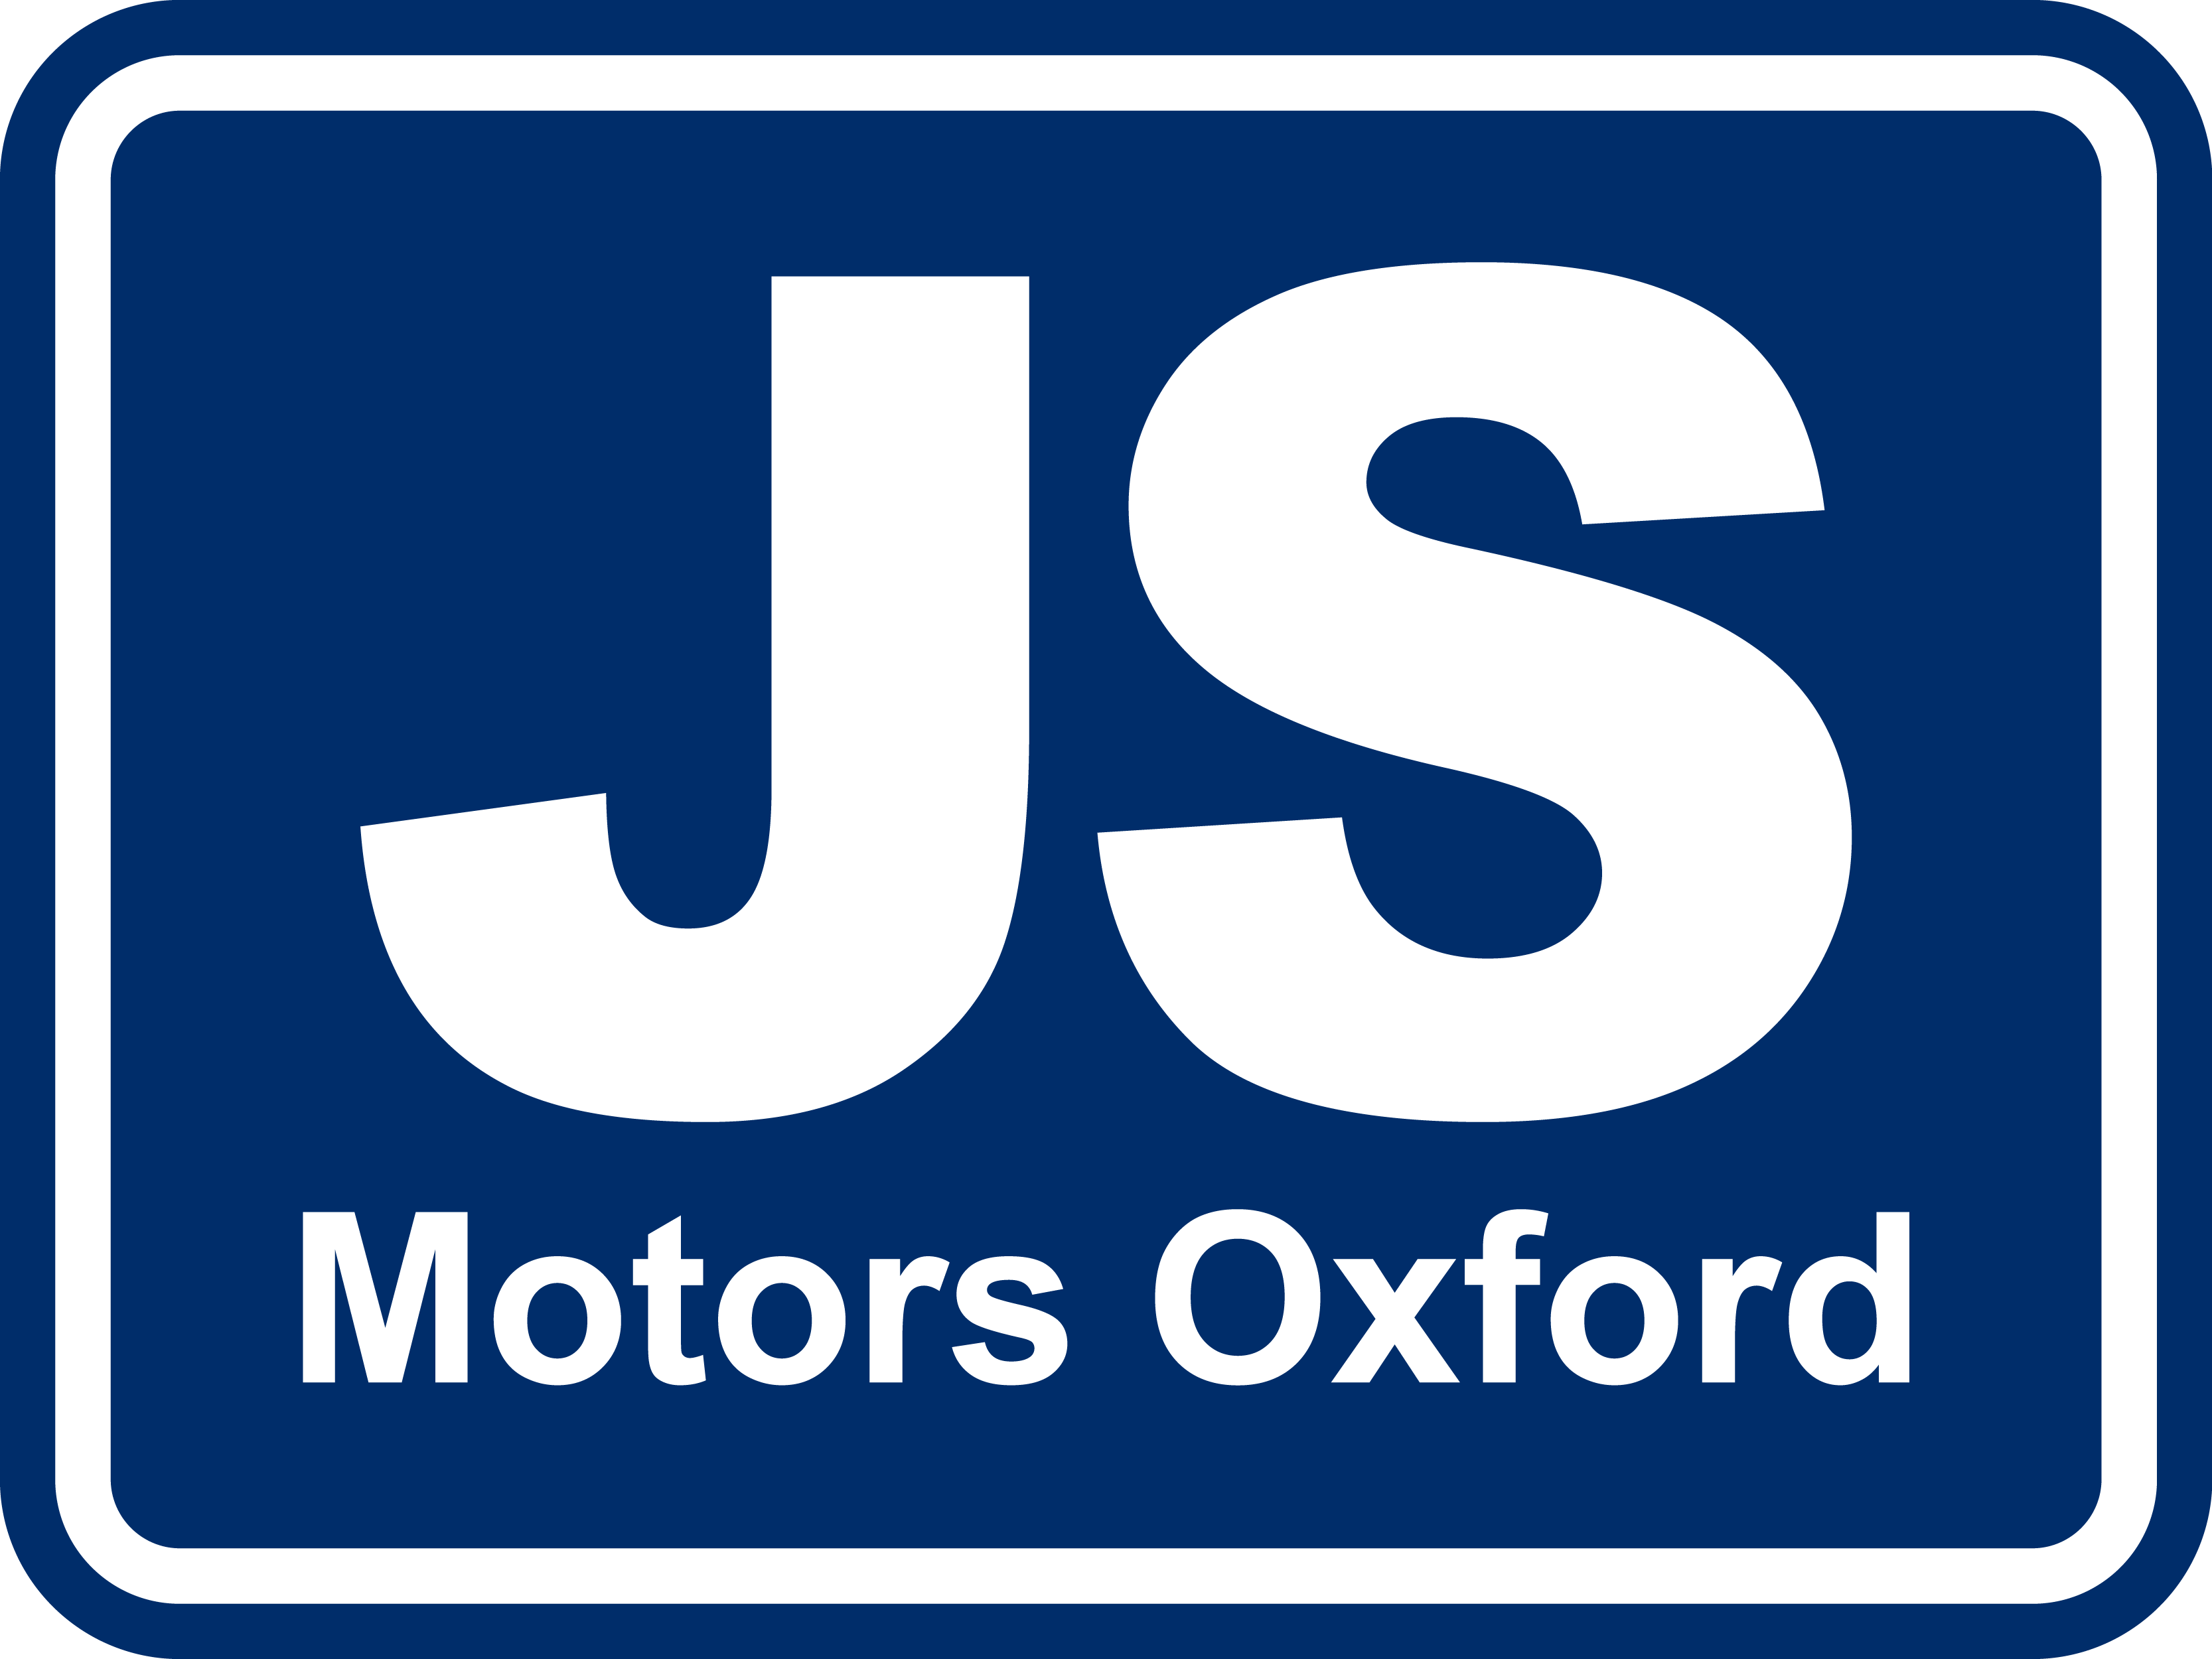 JS Motors Oxford Ltd